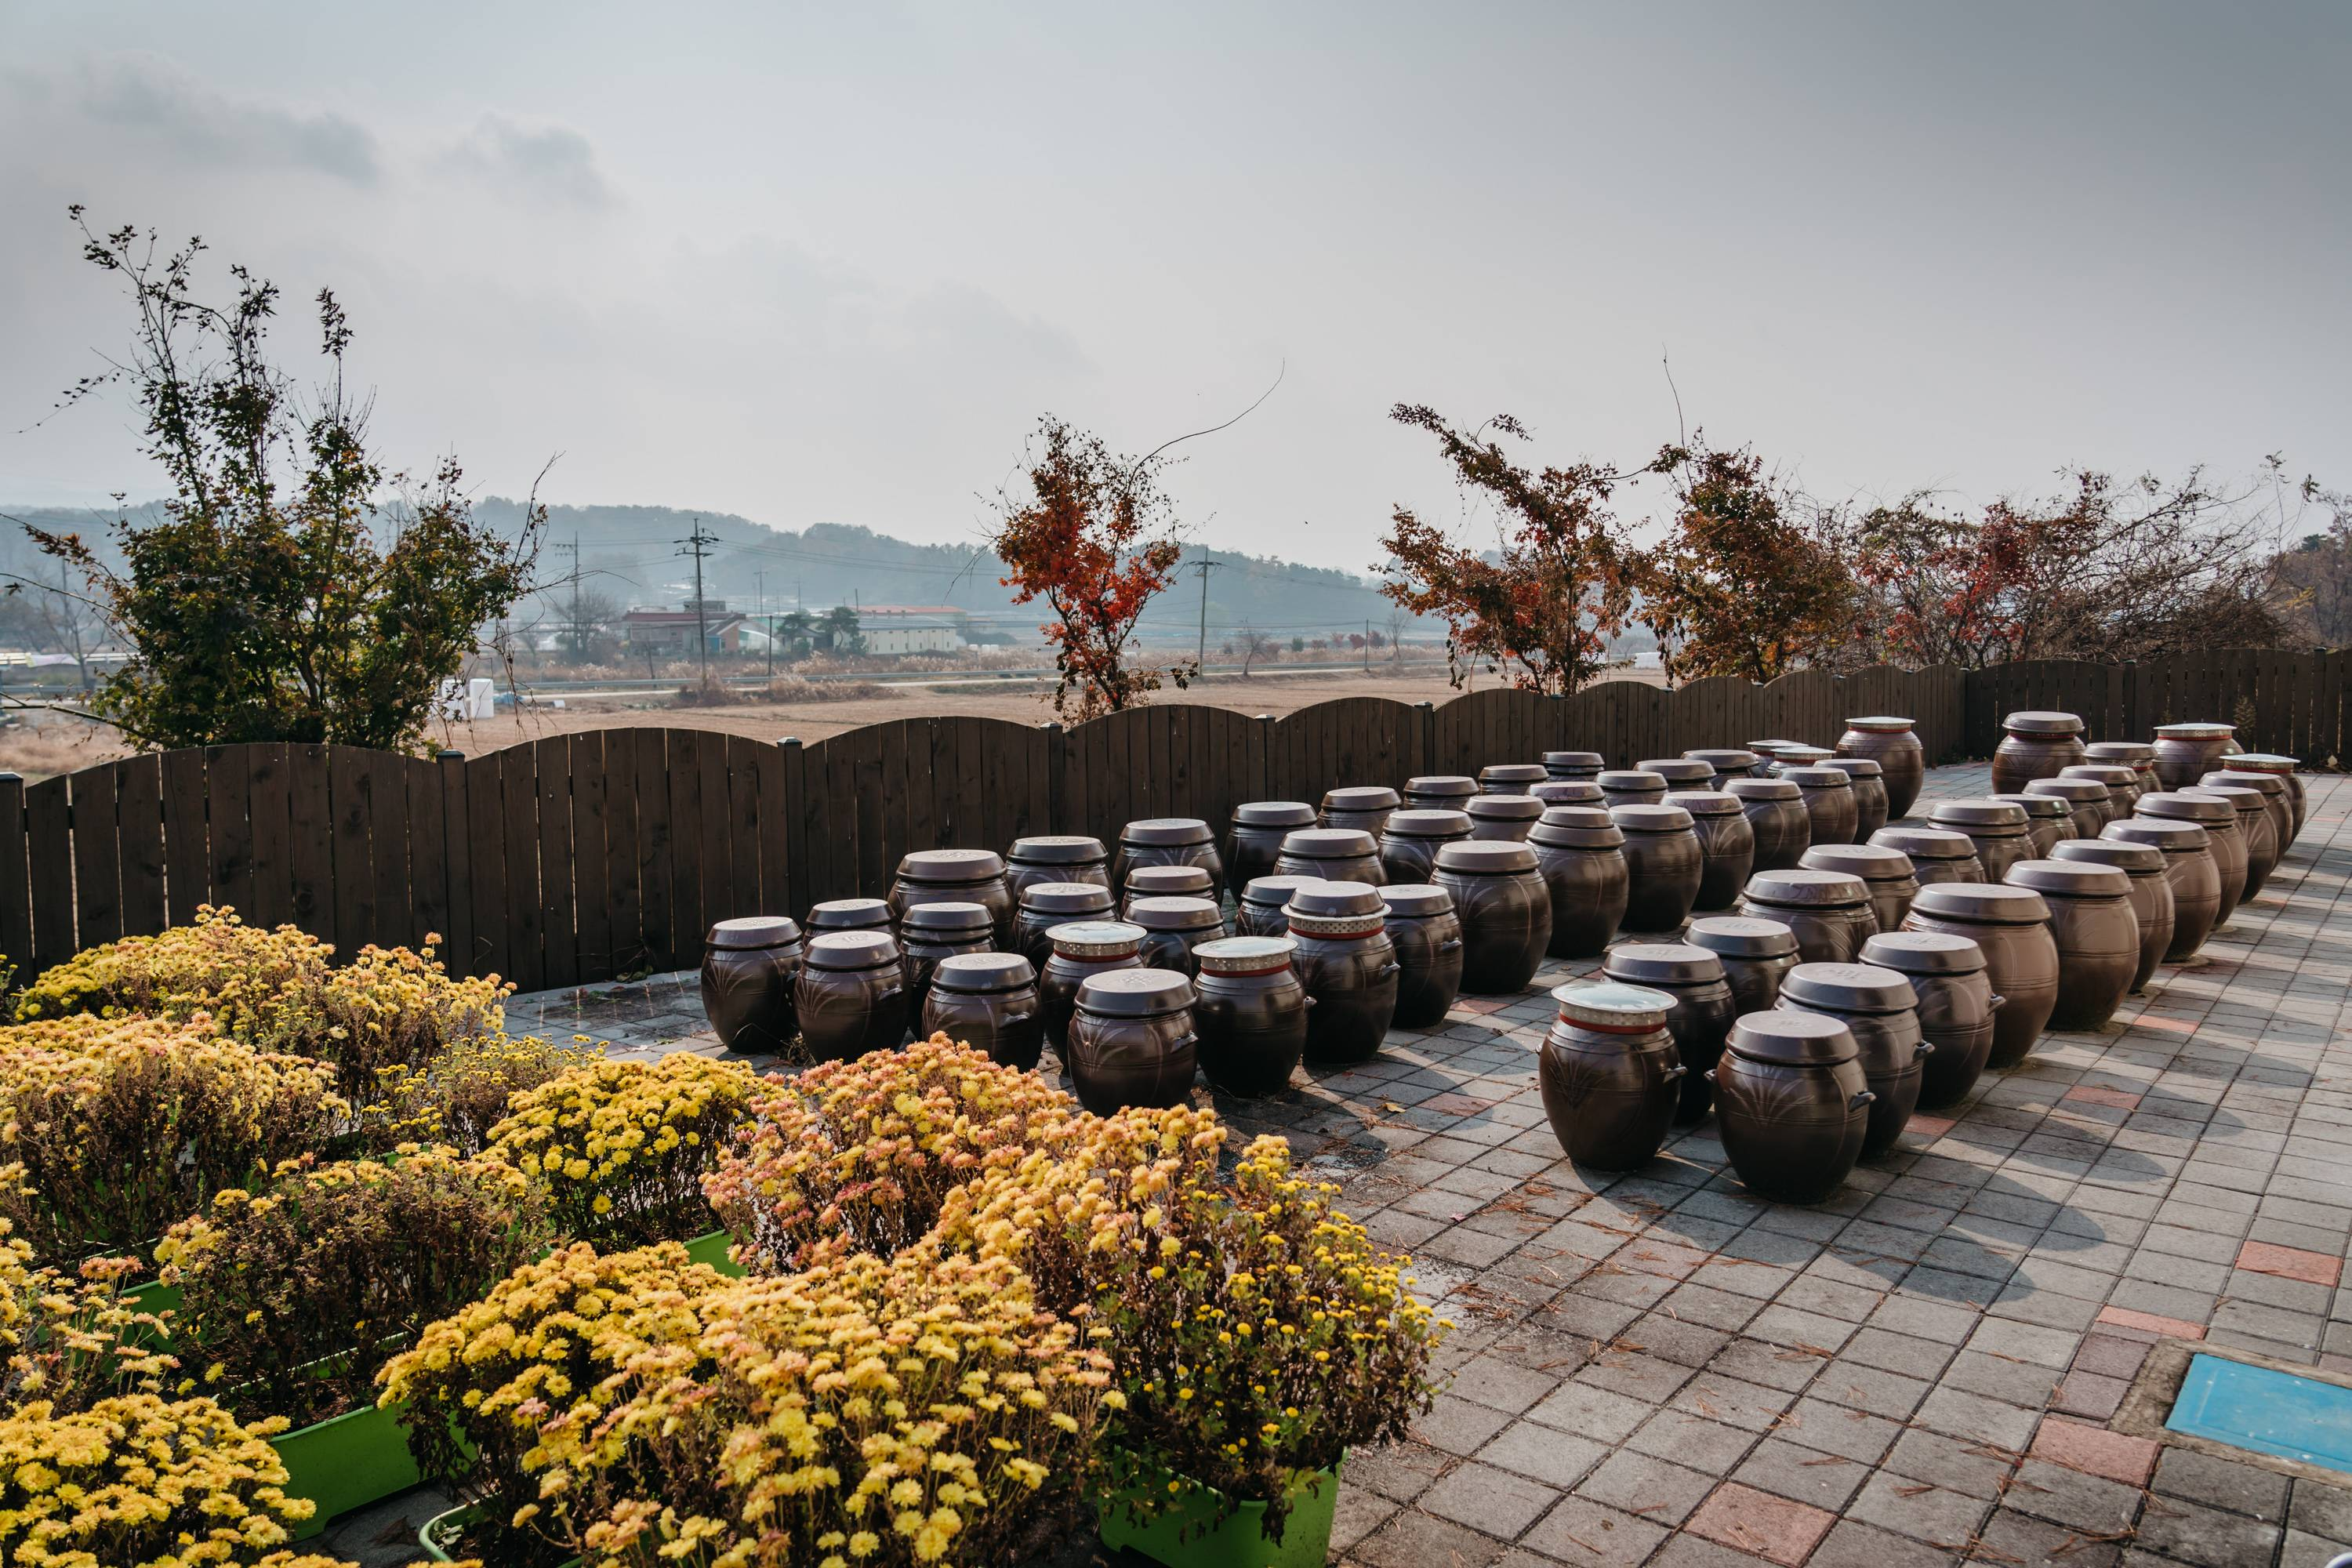 Clay pots in Goesan county in South Korea on Nov. 7. Traditionally, Koreans store kimchi in the pots where the lactic fermentation that occurs gives the kimchi its unique taste and texture. Families that have grown weary of eating commercial kimchi in big cities have started making pilgrimages to the countryside where they can learn how to prepare it on their own. | JUN MICHAEL PARK/THE NEW YORK TIMES